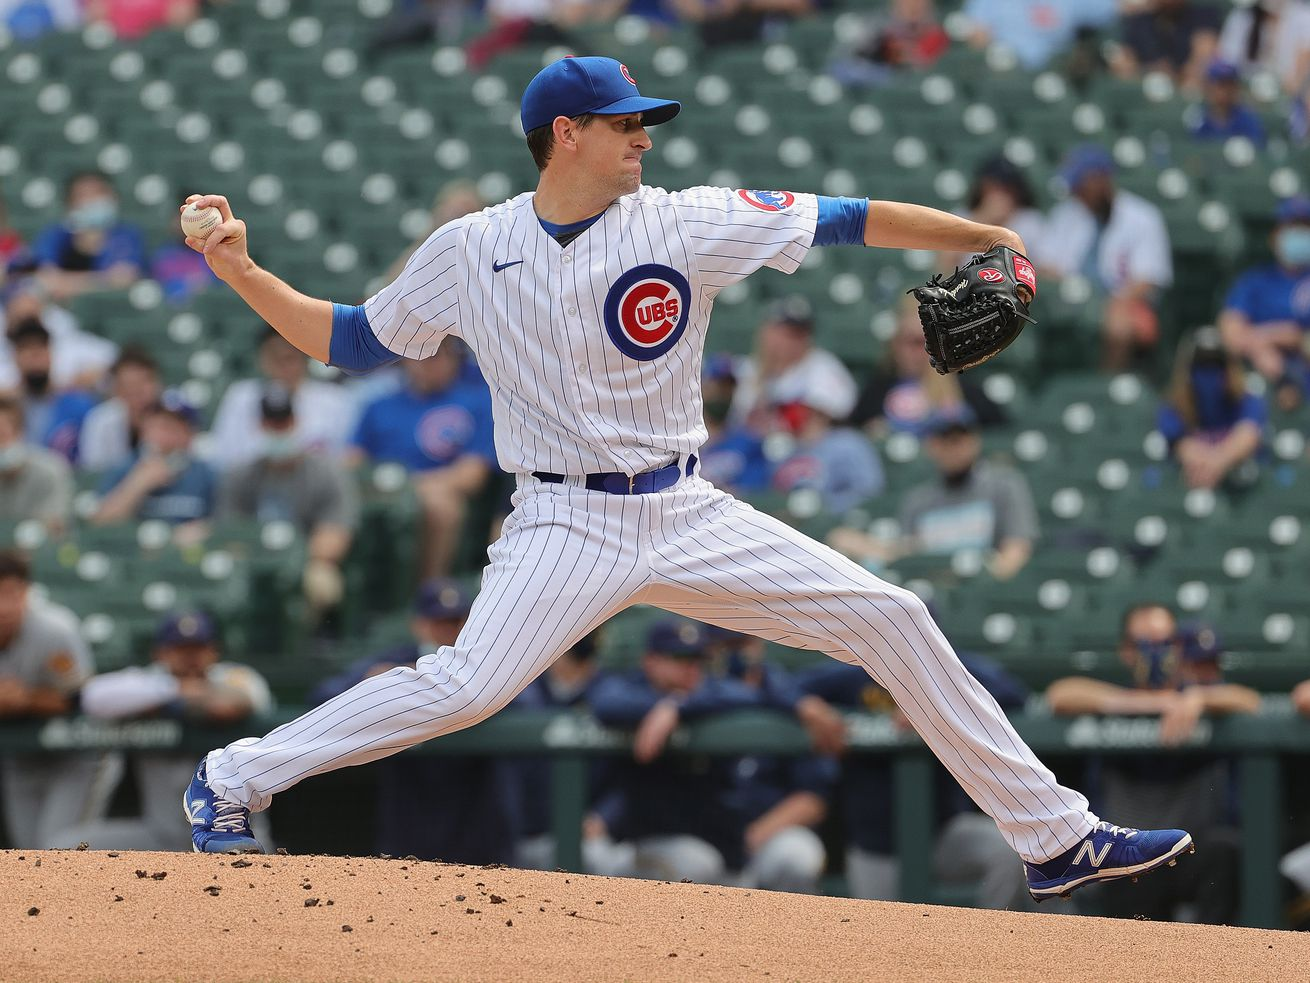 Cubs starter Kyle Hendricks (28) pitched six shutout innings against the Brewers on Wednesday. He allowed four hits, walked one and struck out six.